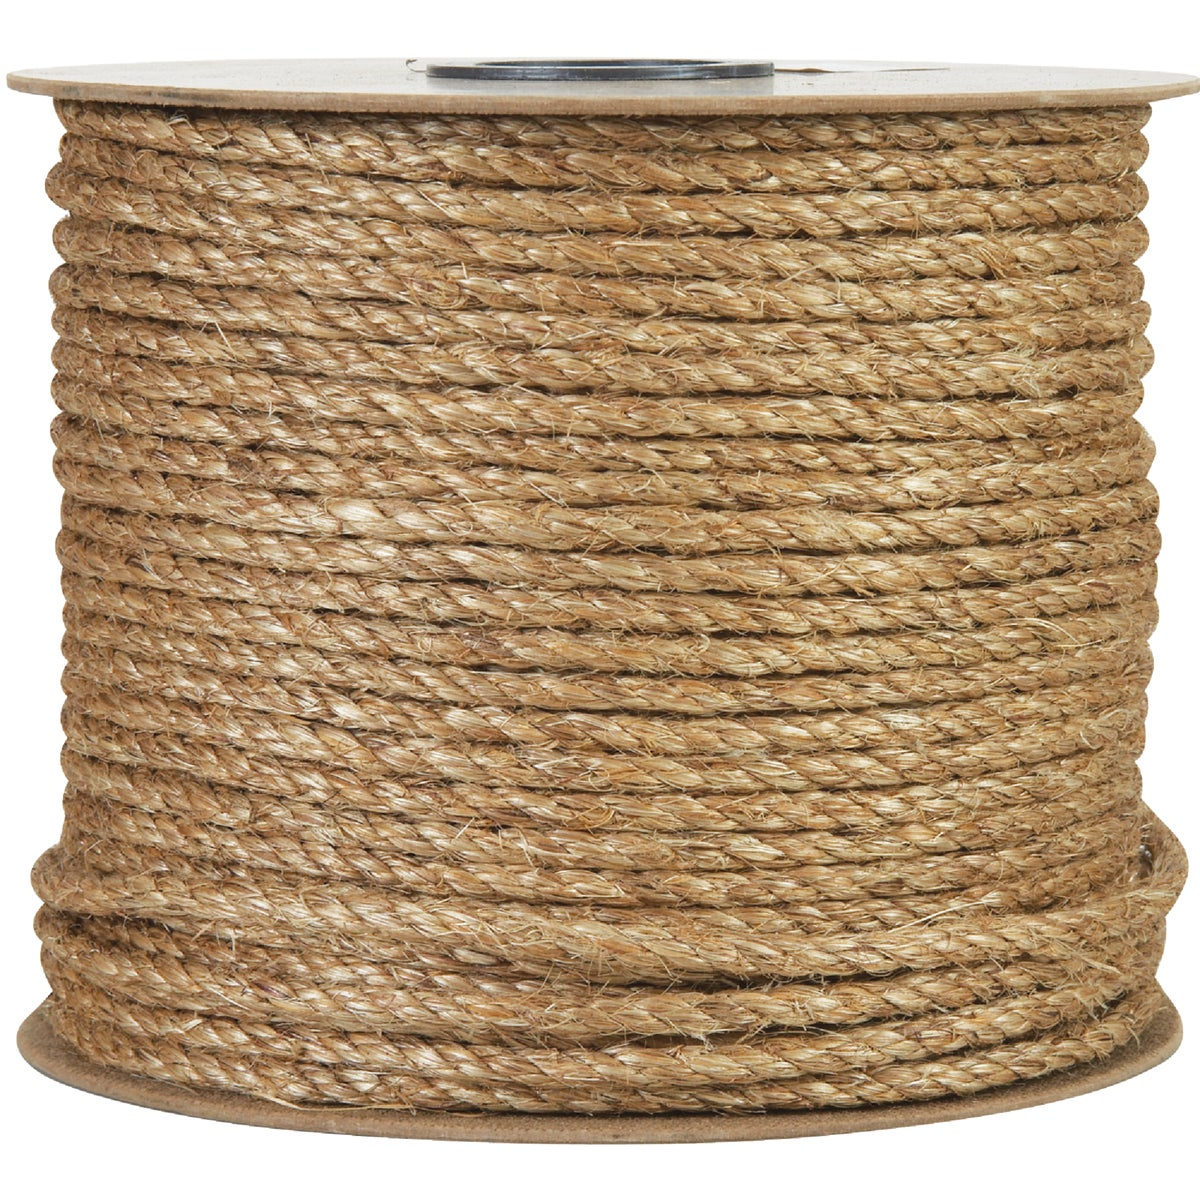 "1/2""X300' MANILA ROPE - 706971 by Do it Best"